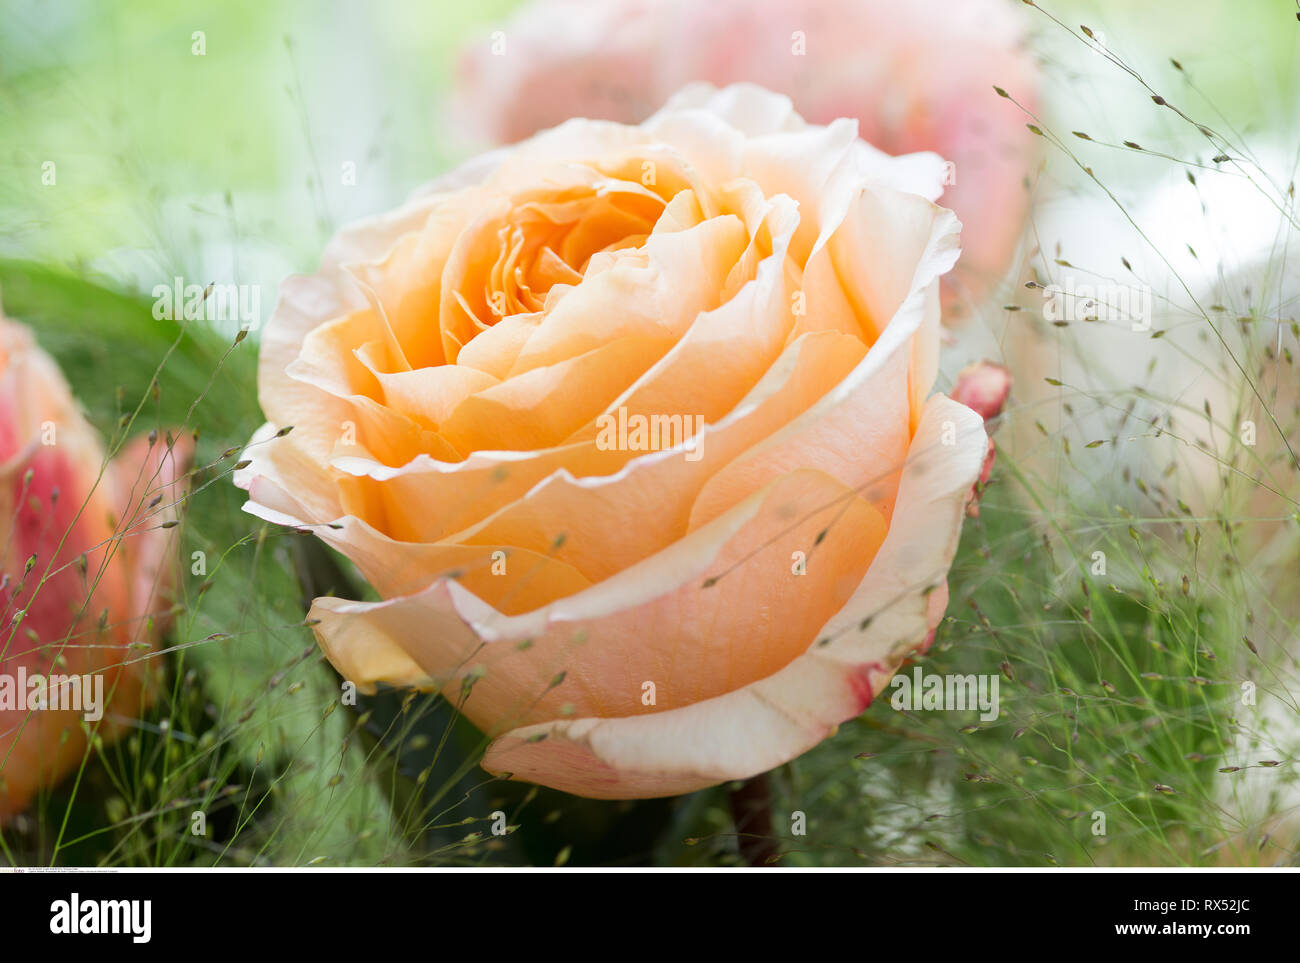 botany, rose bloom of the kind 'Caraluna', Caution! For Greetingcard-Use / Postcard-Use In German Speaking Countries Certain Restrictions May Apply - Stock Image